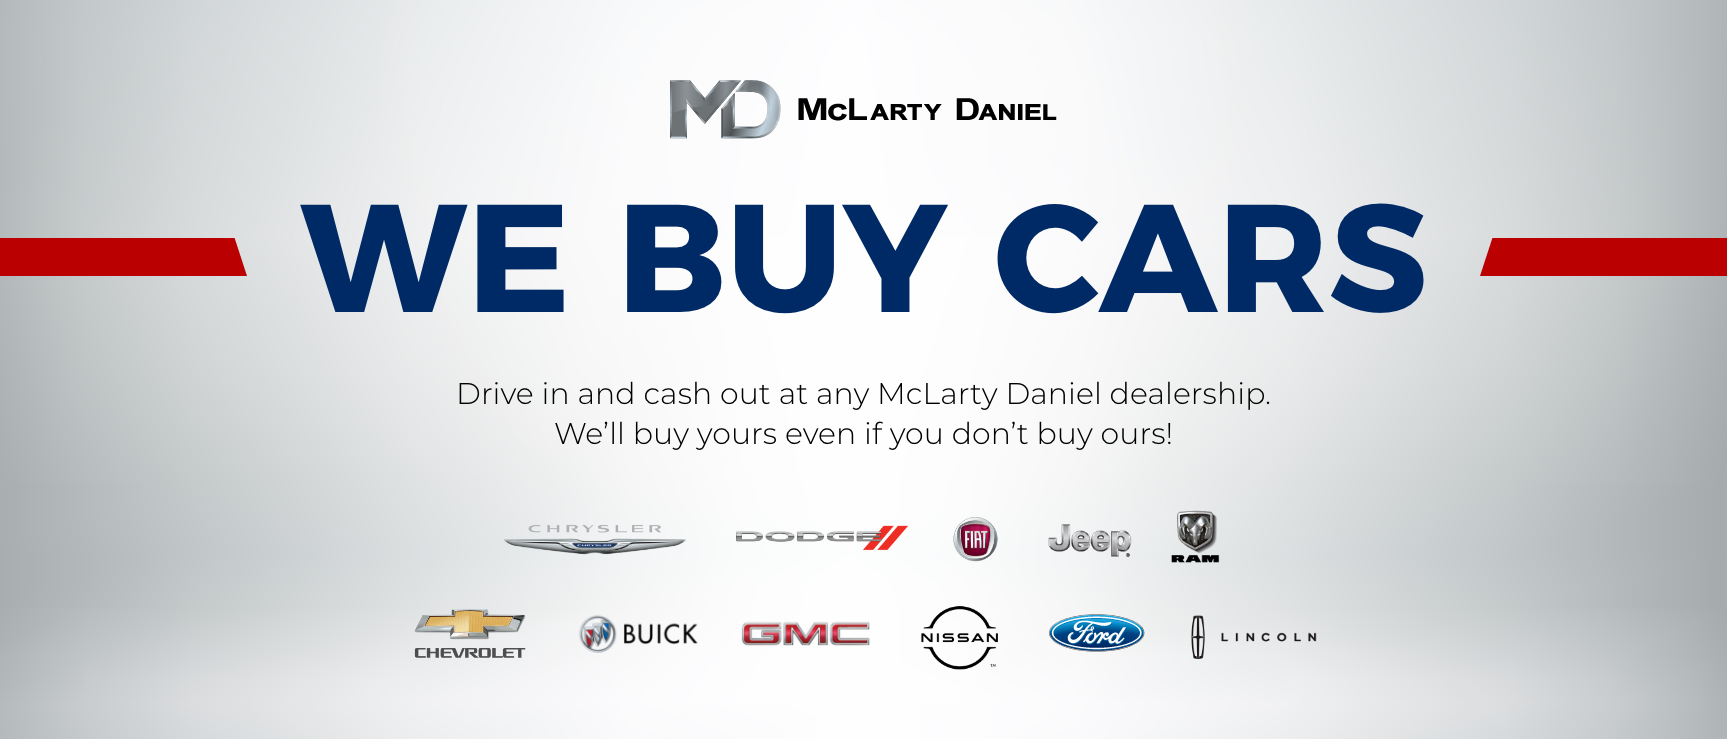 Drive in and cash out at any McLarty Daniel dealership. We'll buy yours even if you don't buy ours!